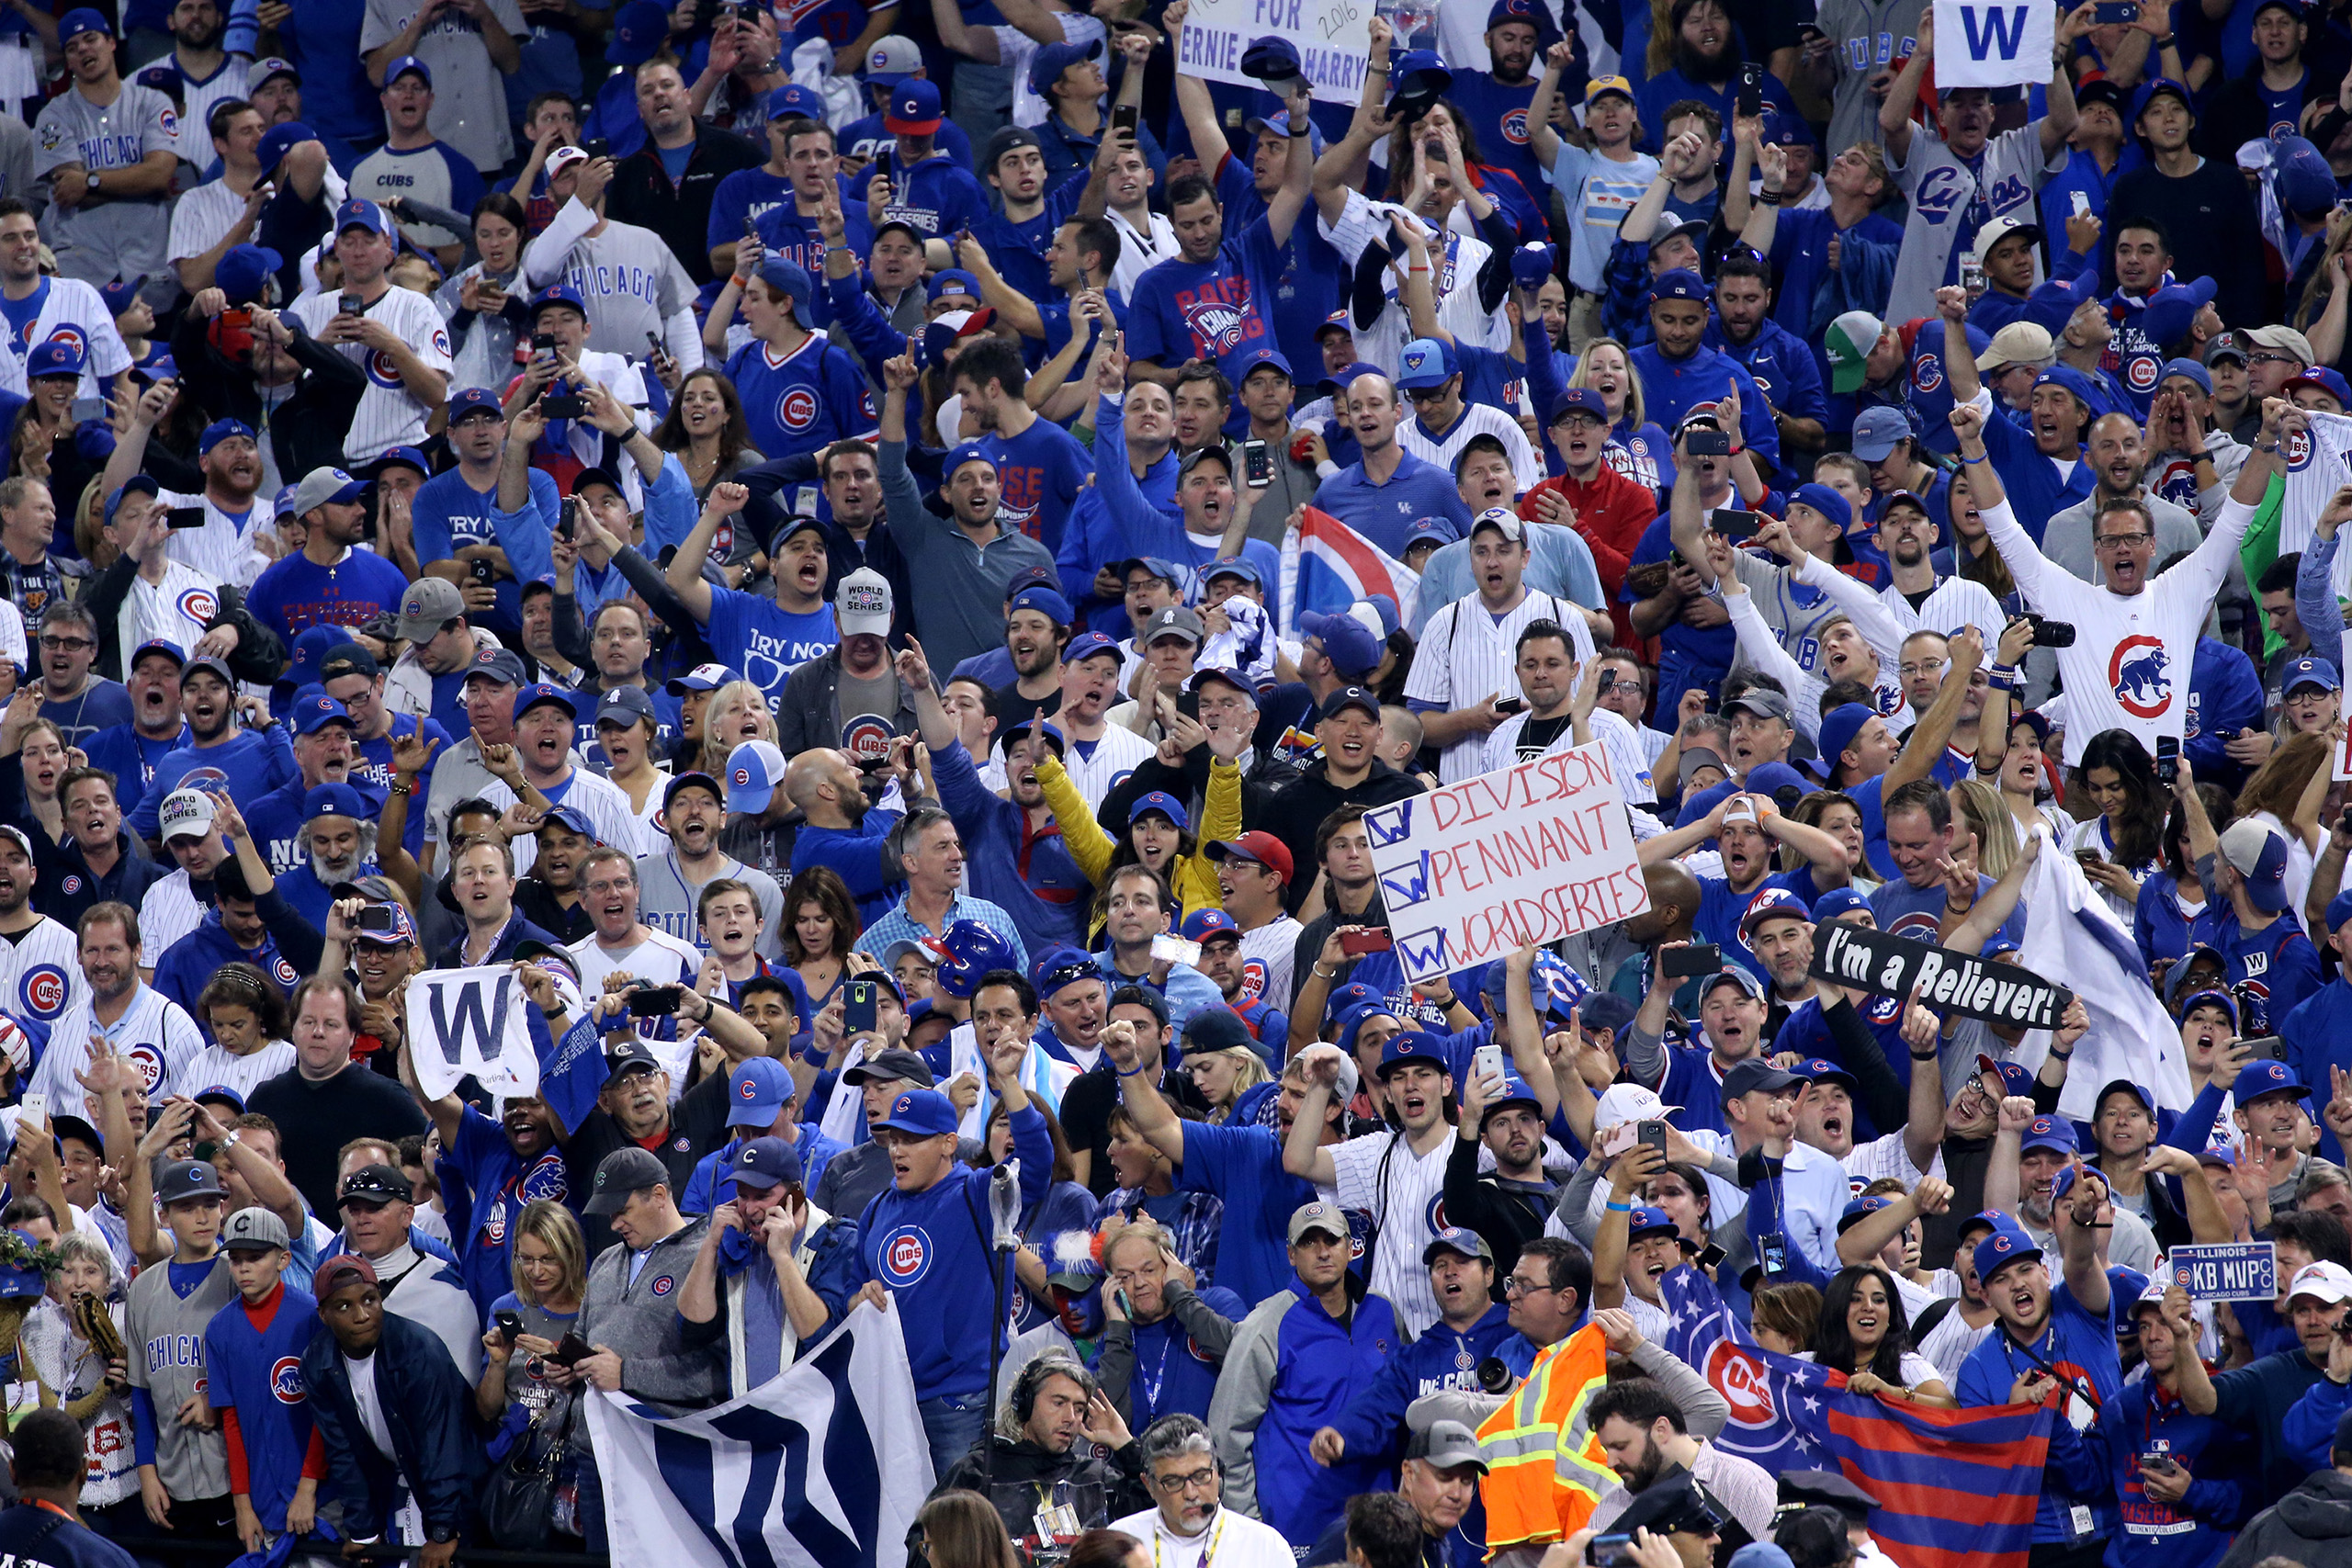 Cubs fans celebrate the Chicago Cubs winning the World Series at the end of Game 7, on Nov. 3, 2016, at Progressive Field in Cleveland.